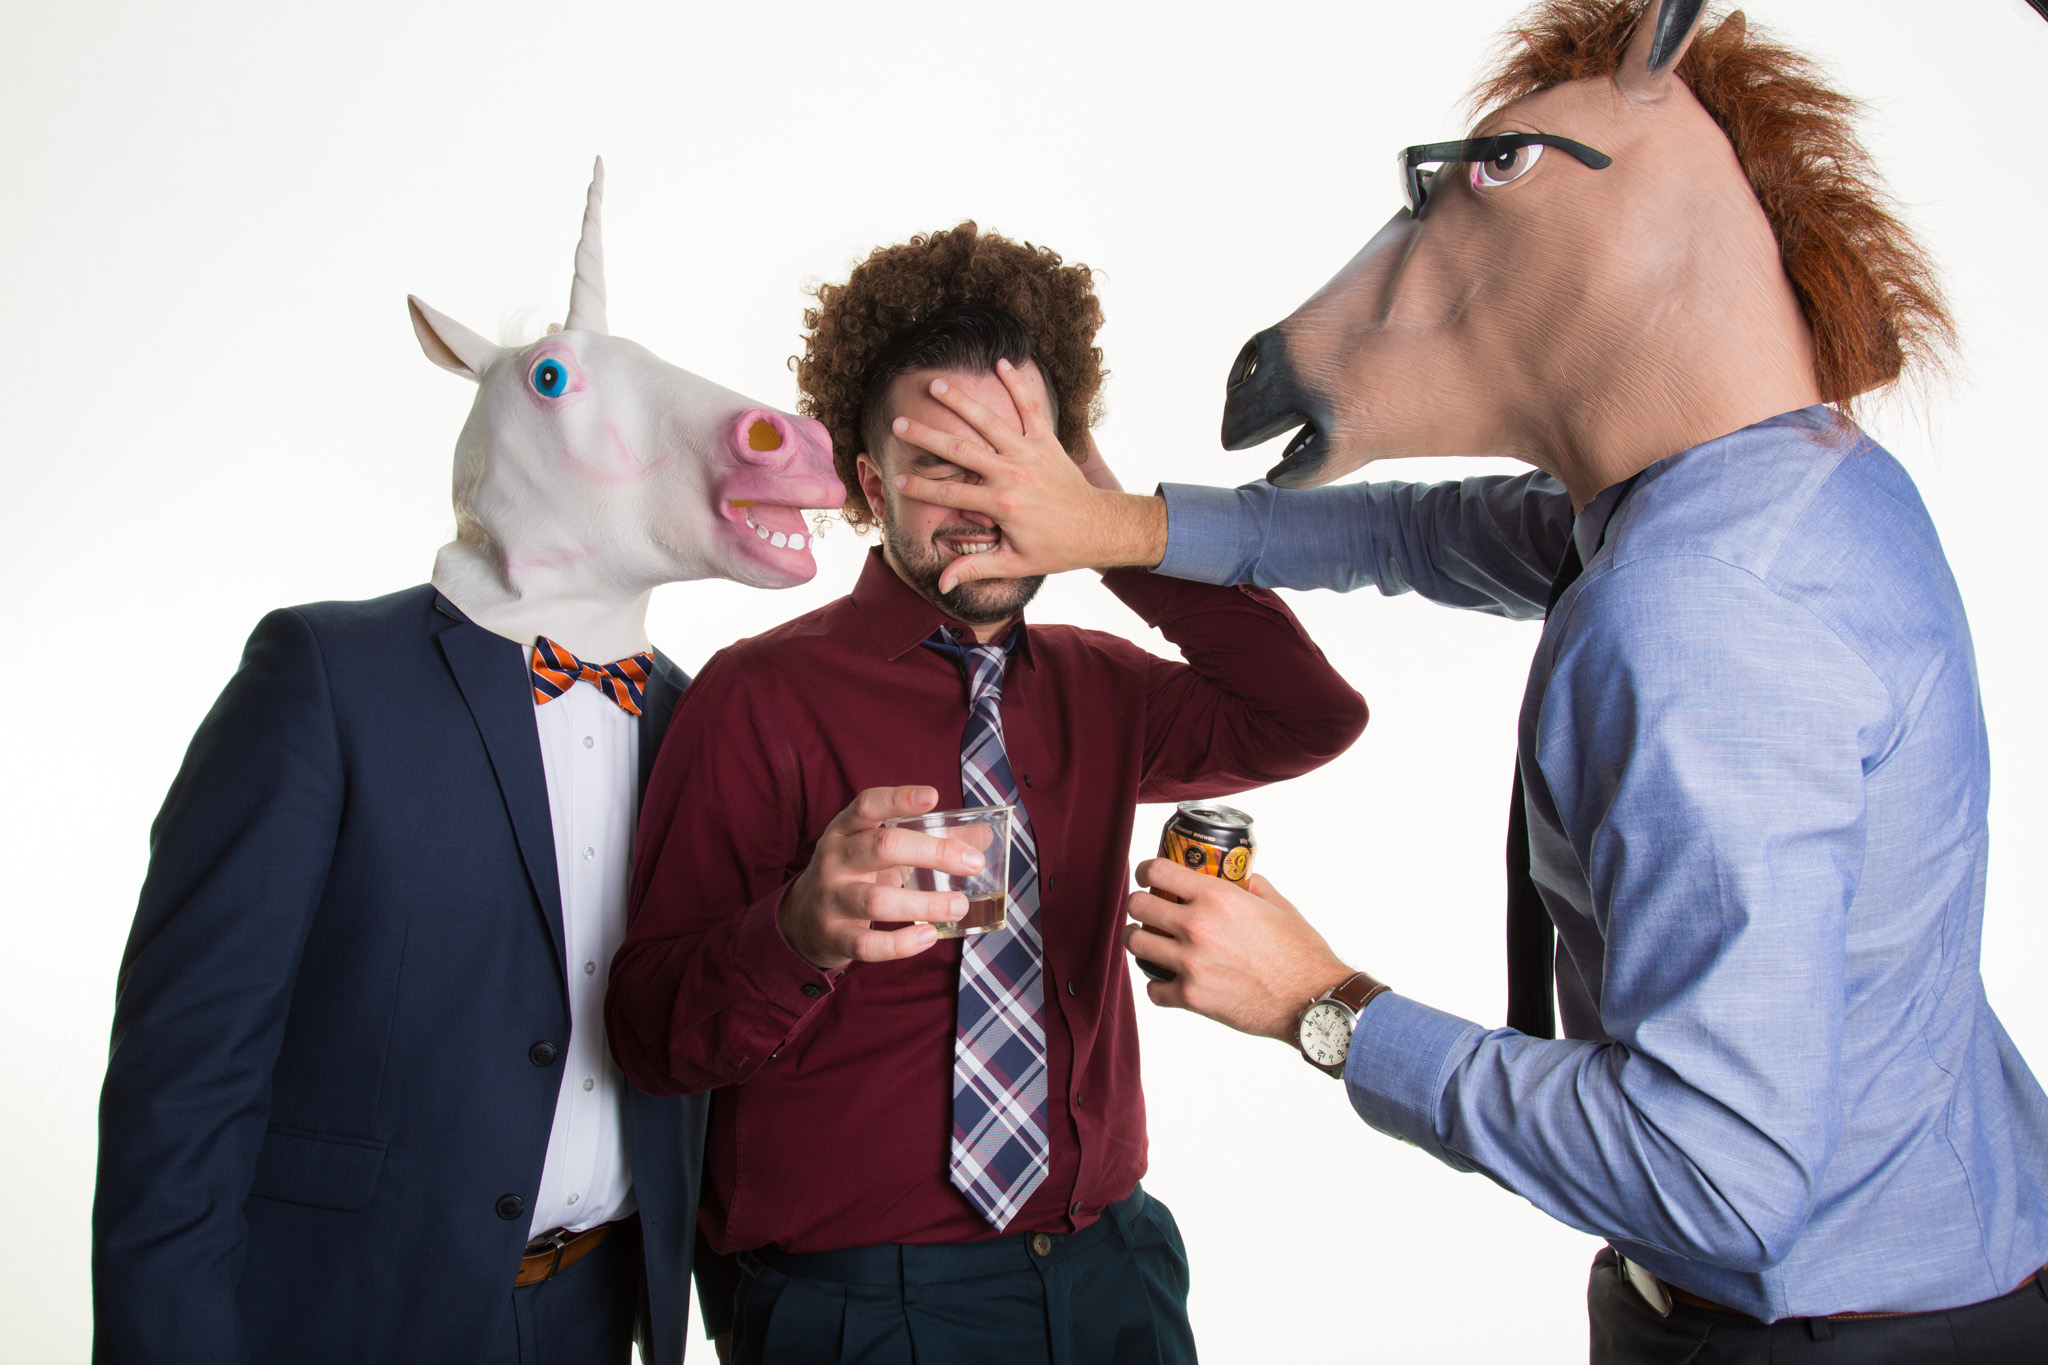 3 wedding guest in the4K Photo Booth, one wearing a horse head mask and another a unicorn mask.